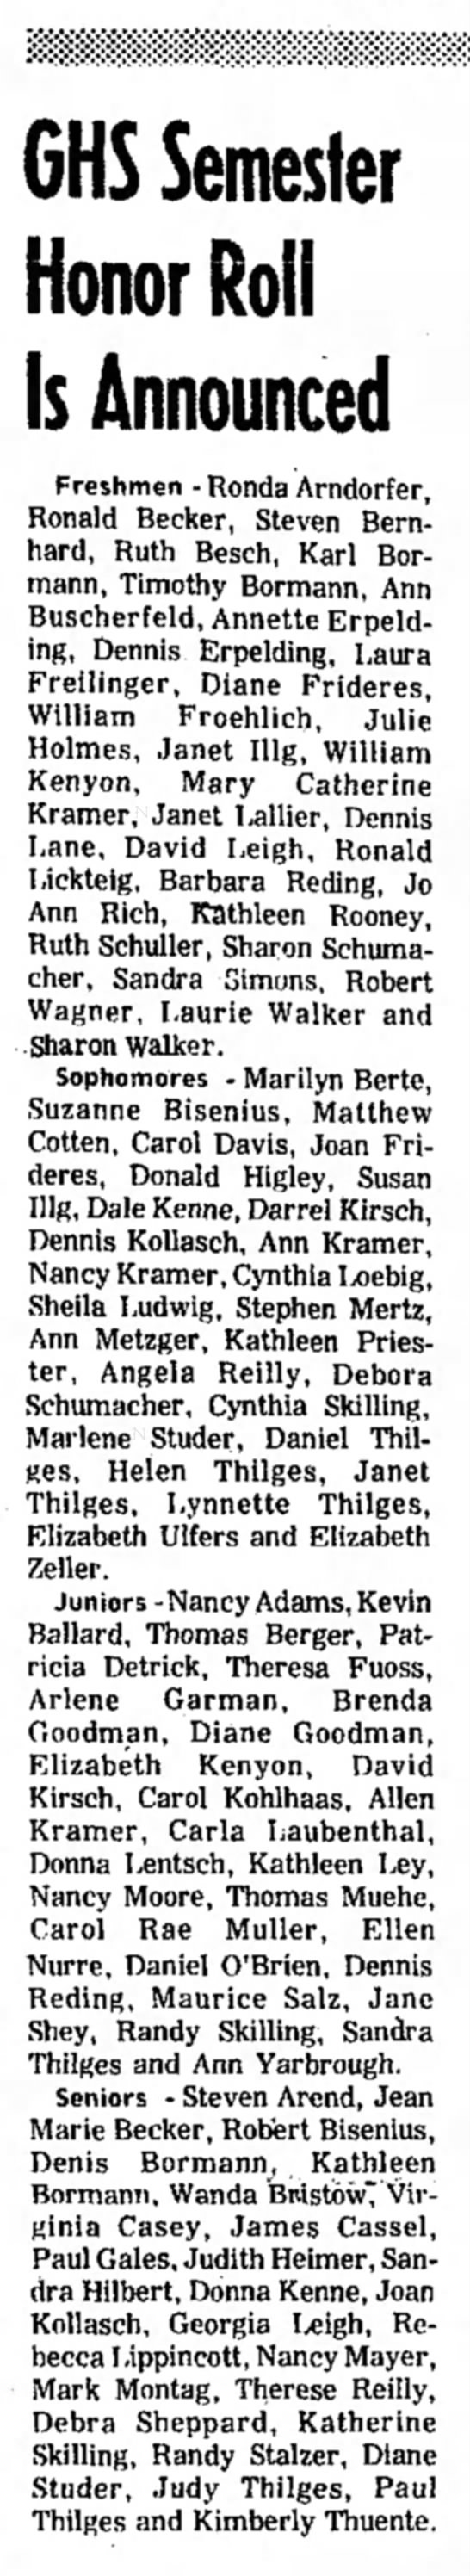 GHS honor roll 1974 -